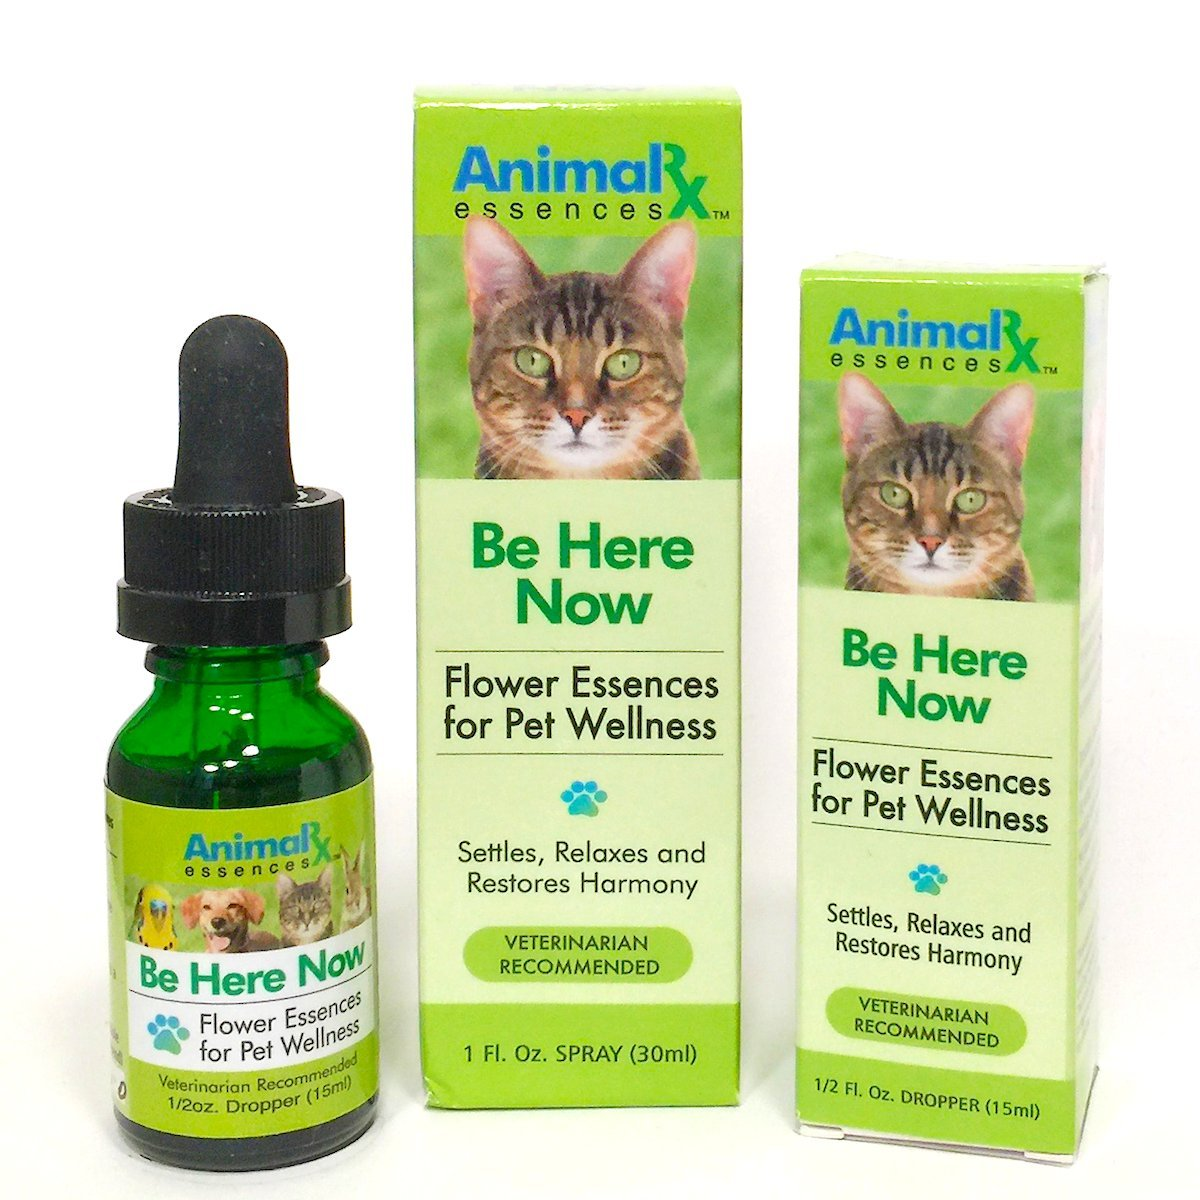 Be Here Now Flower Essences for Companion Animals